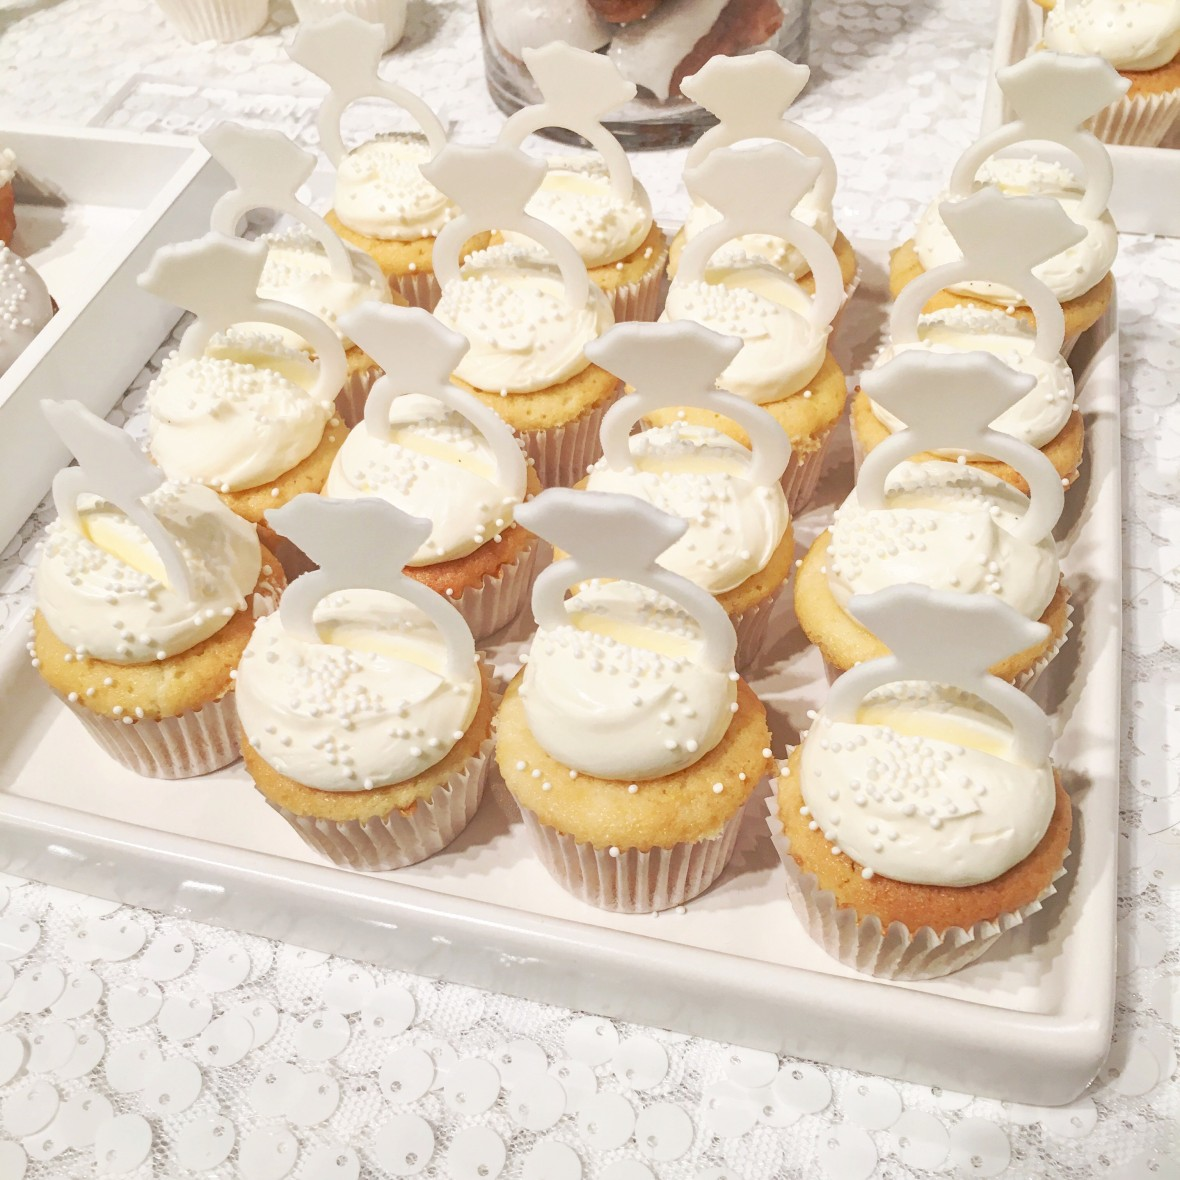 weddings in color launch party - mini cupcakes from @ninecakes